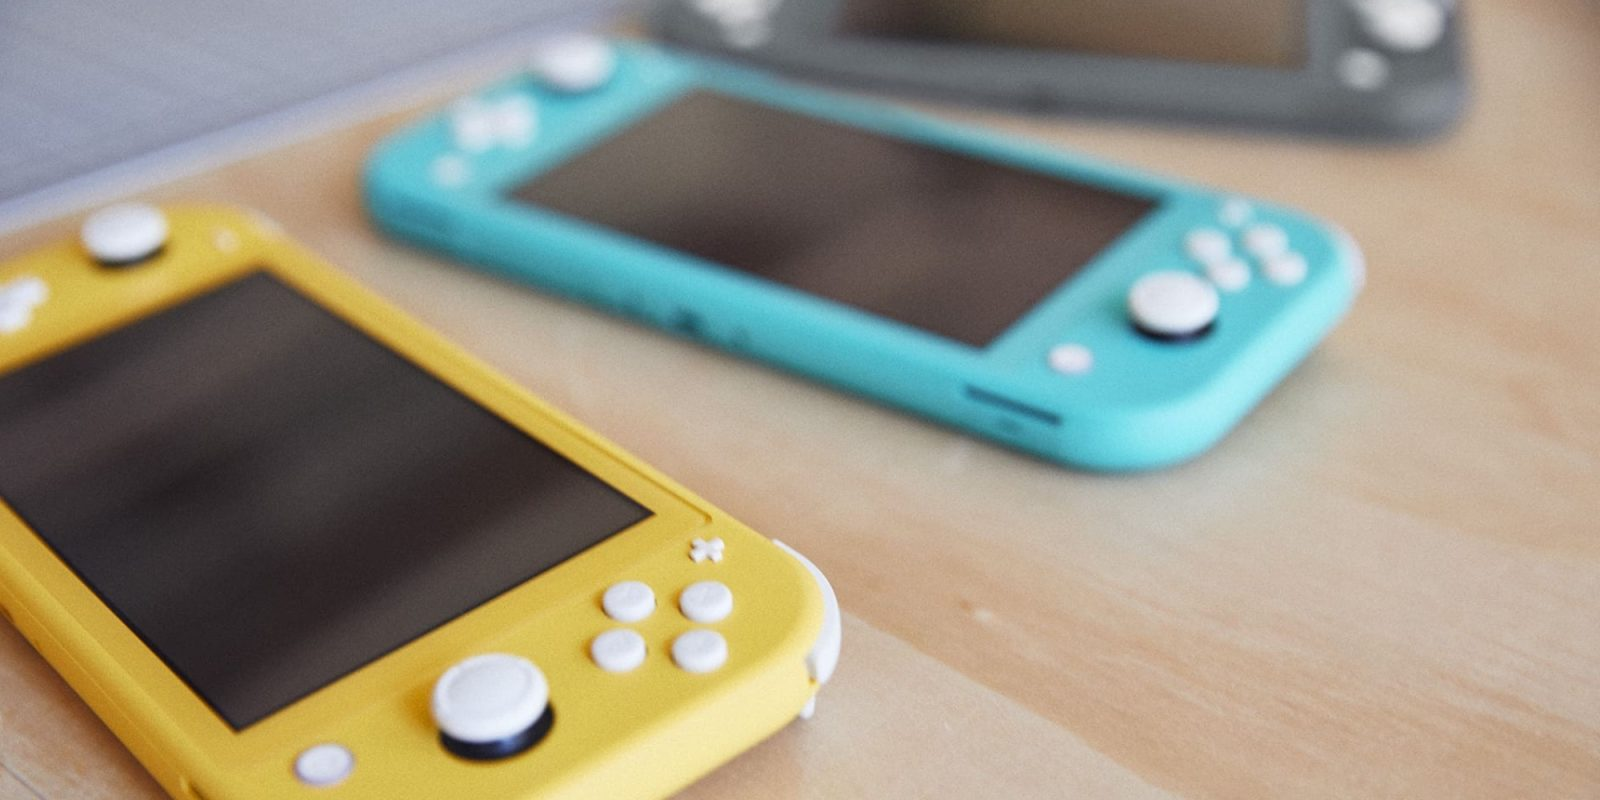 Nintendo Switch Lite gets first discount to $170 in all three colors